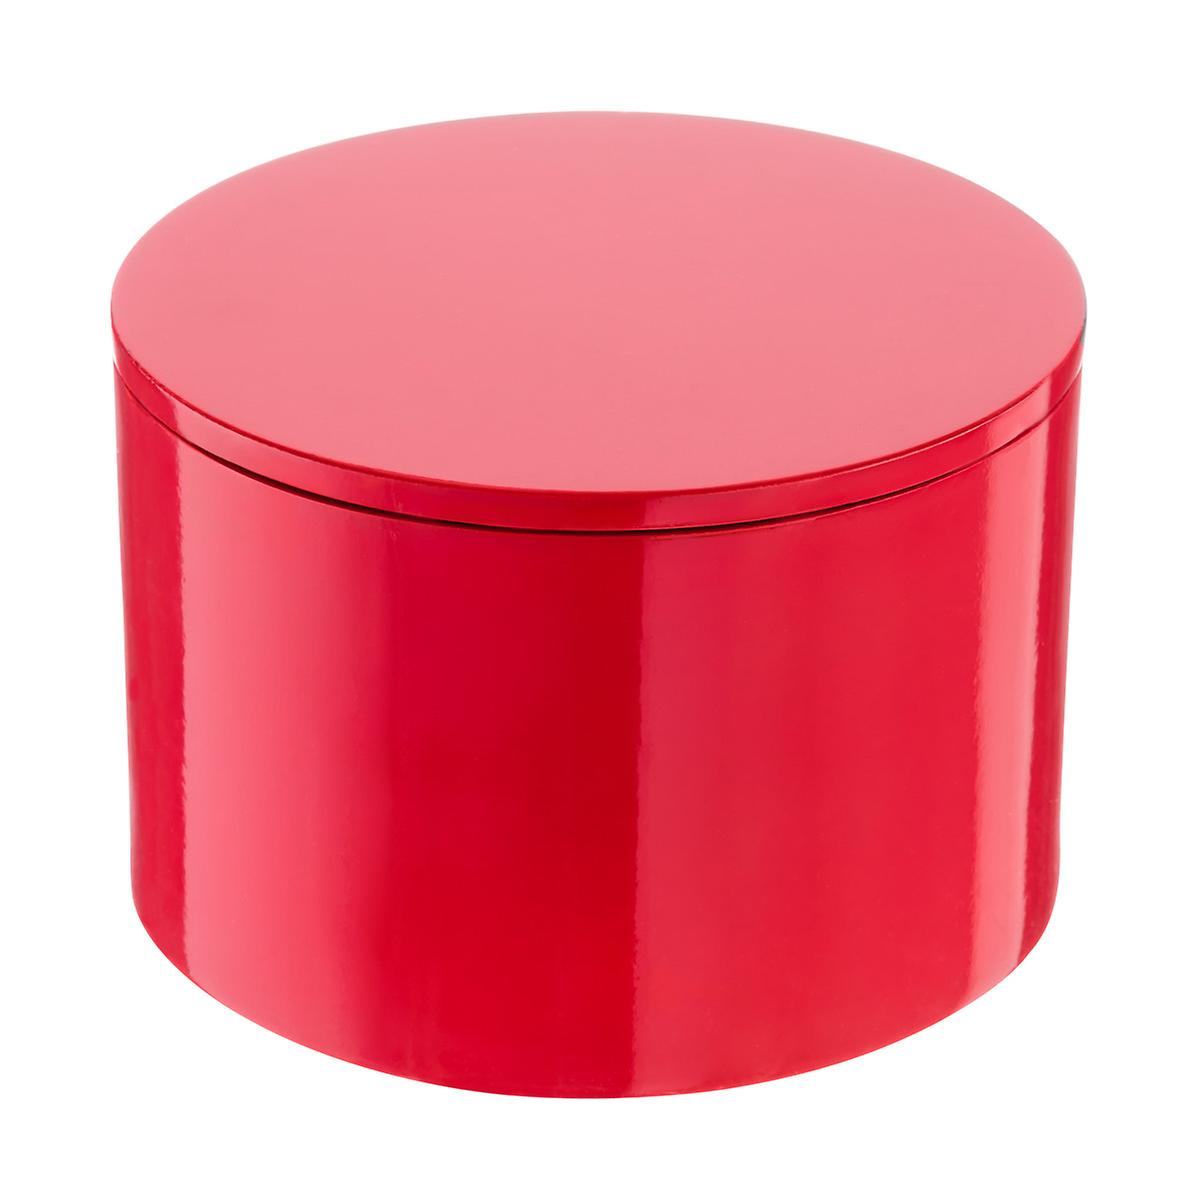 Red Round Lacquered Box The Container Store